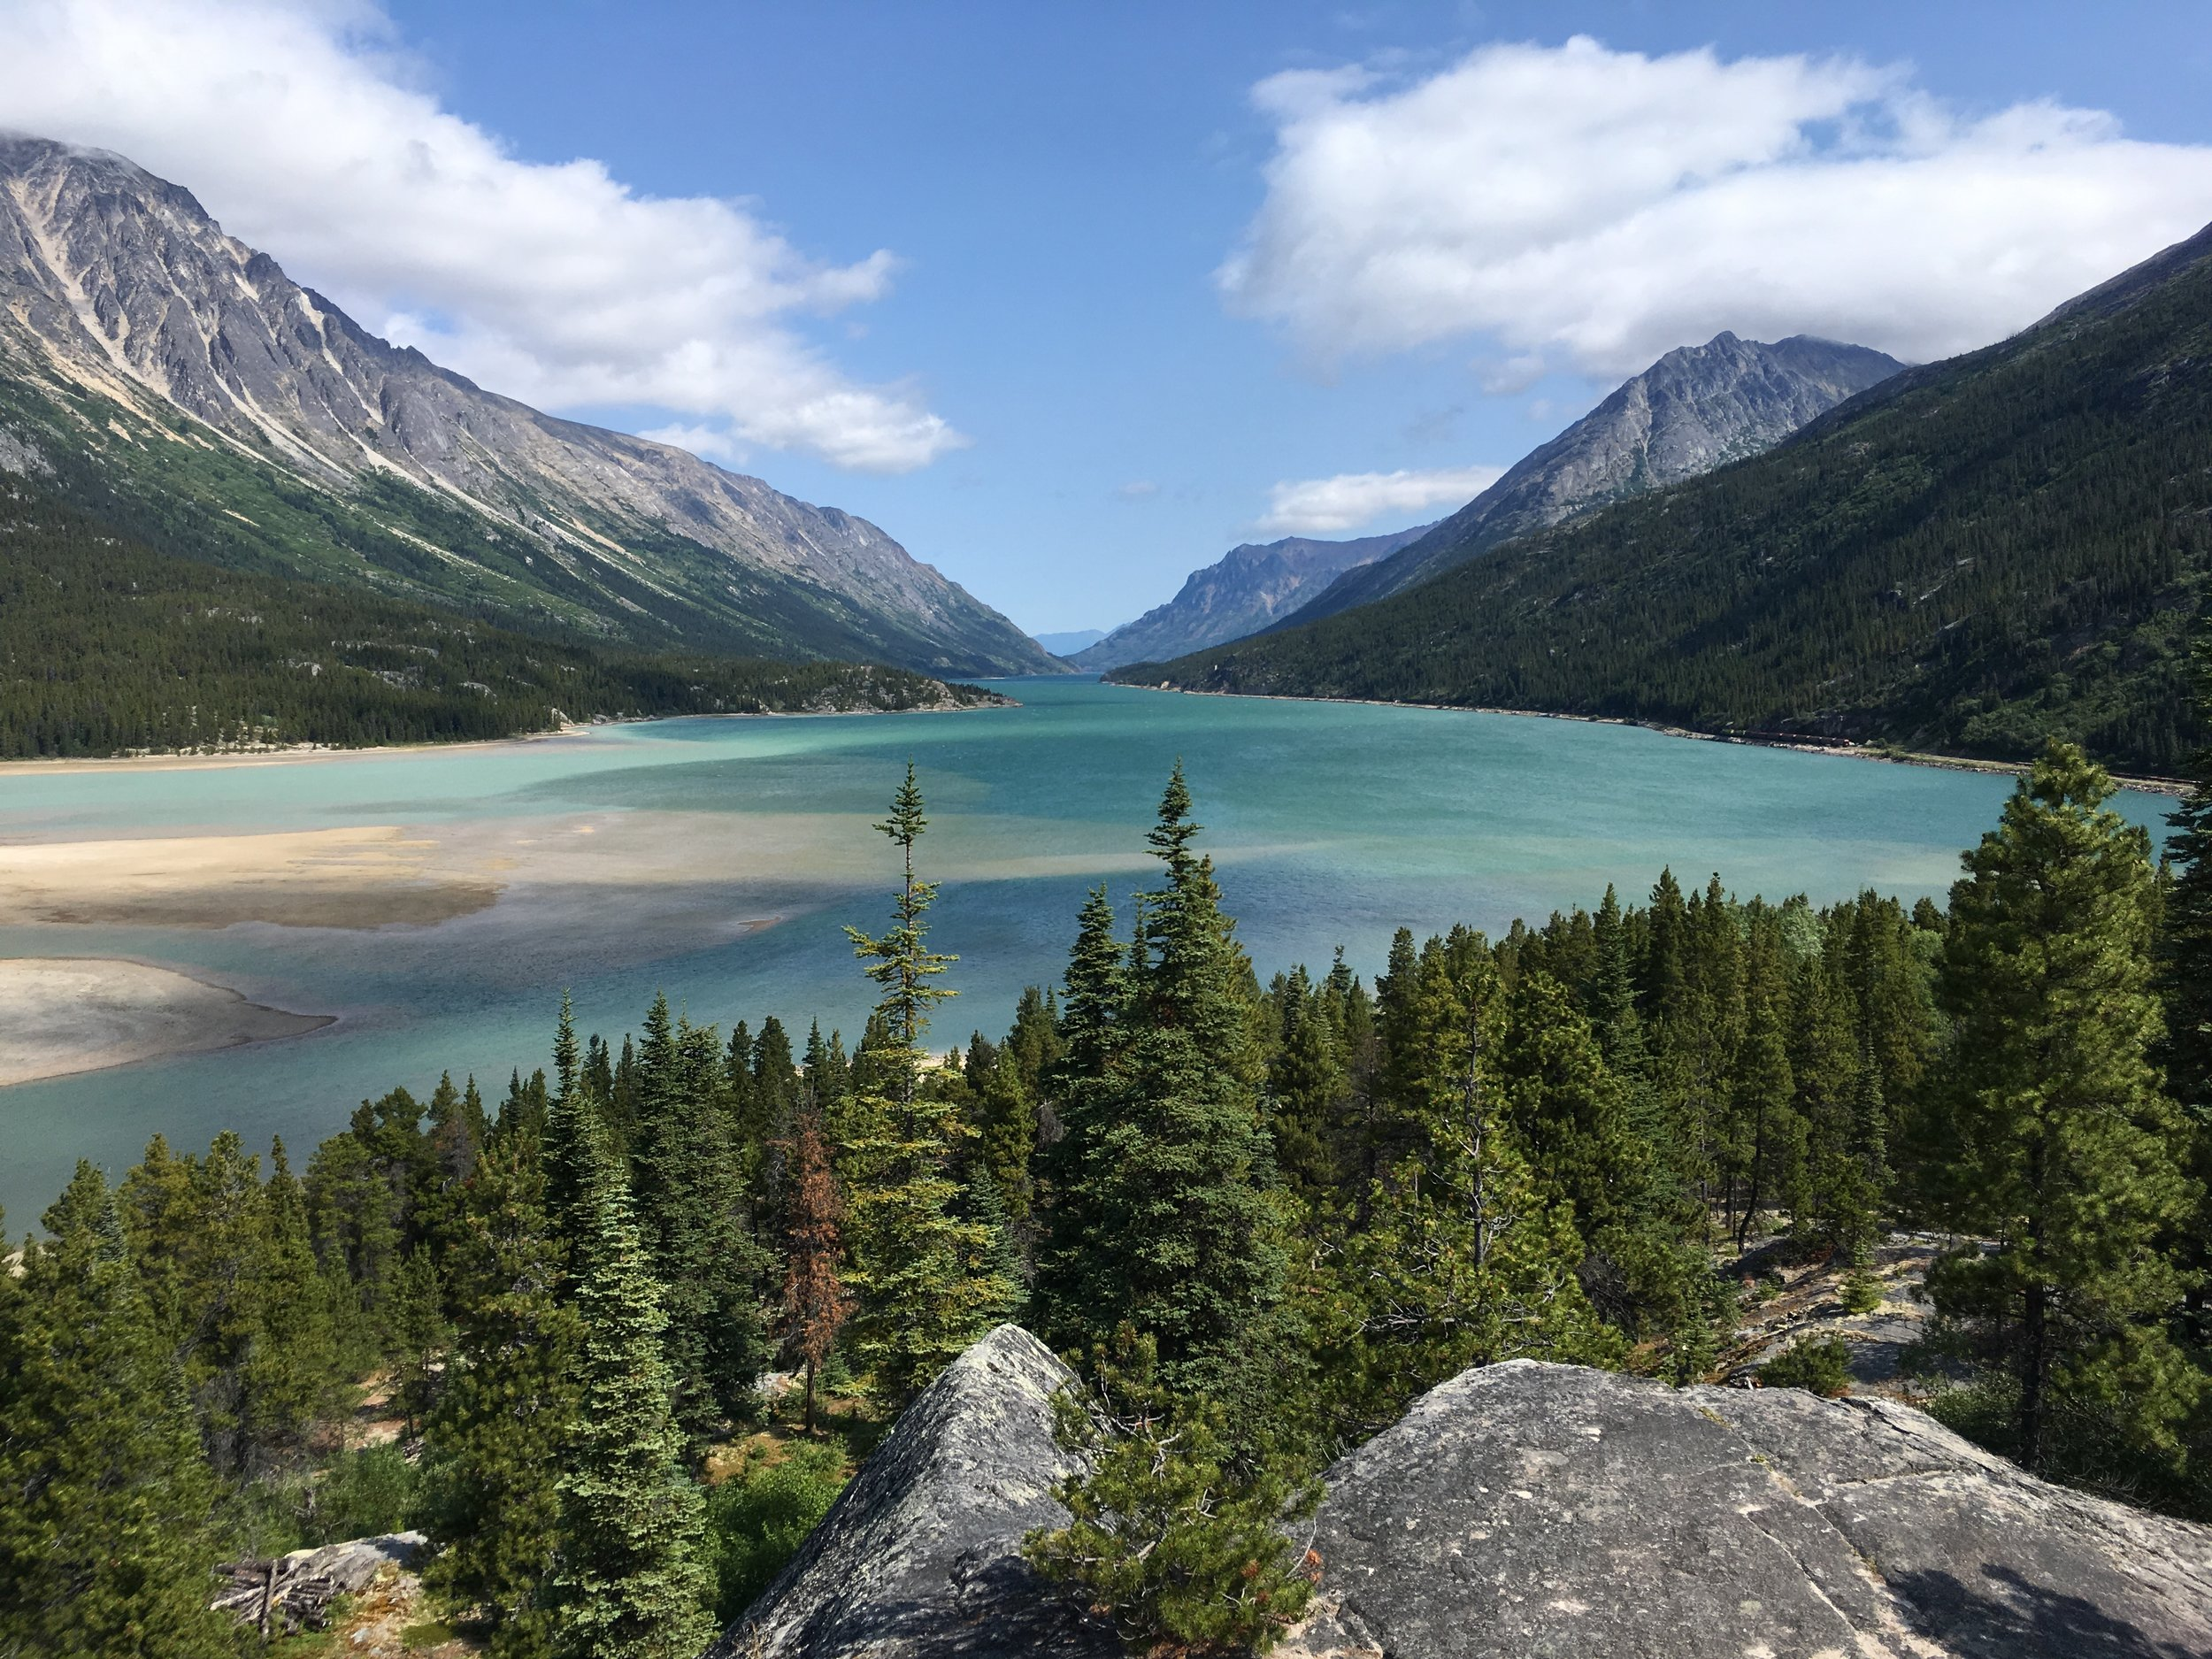 Bennet Lake - Yukon headwaters. The terminus of the hiking trail and the beginning the paddling trail